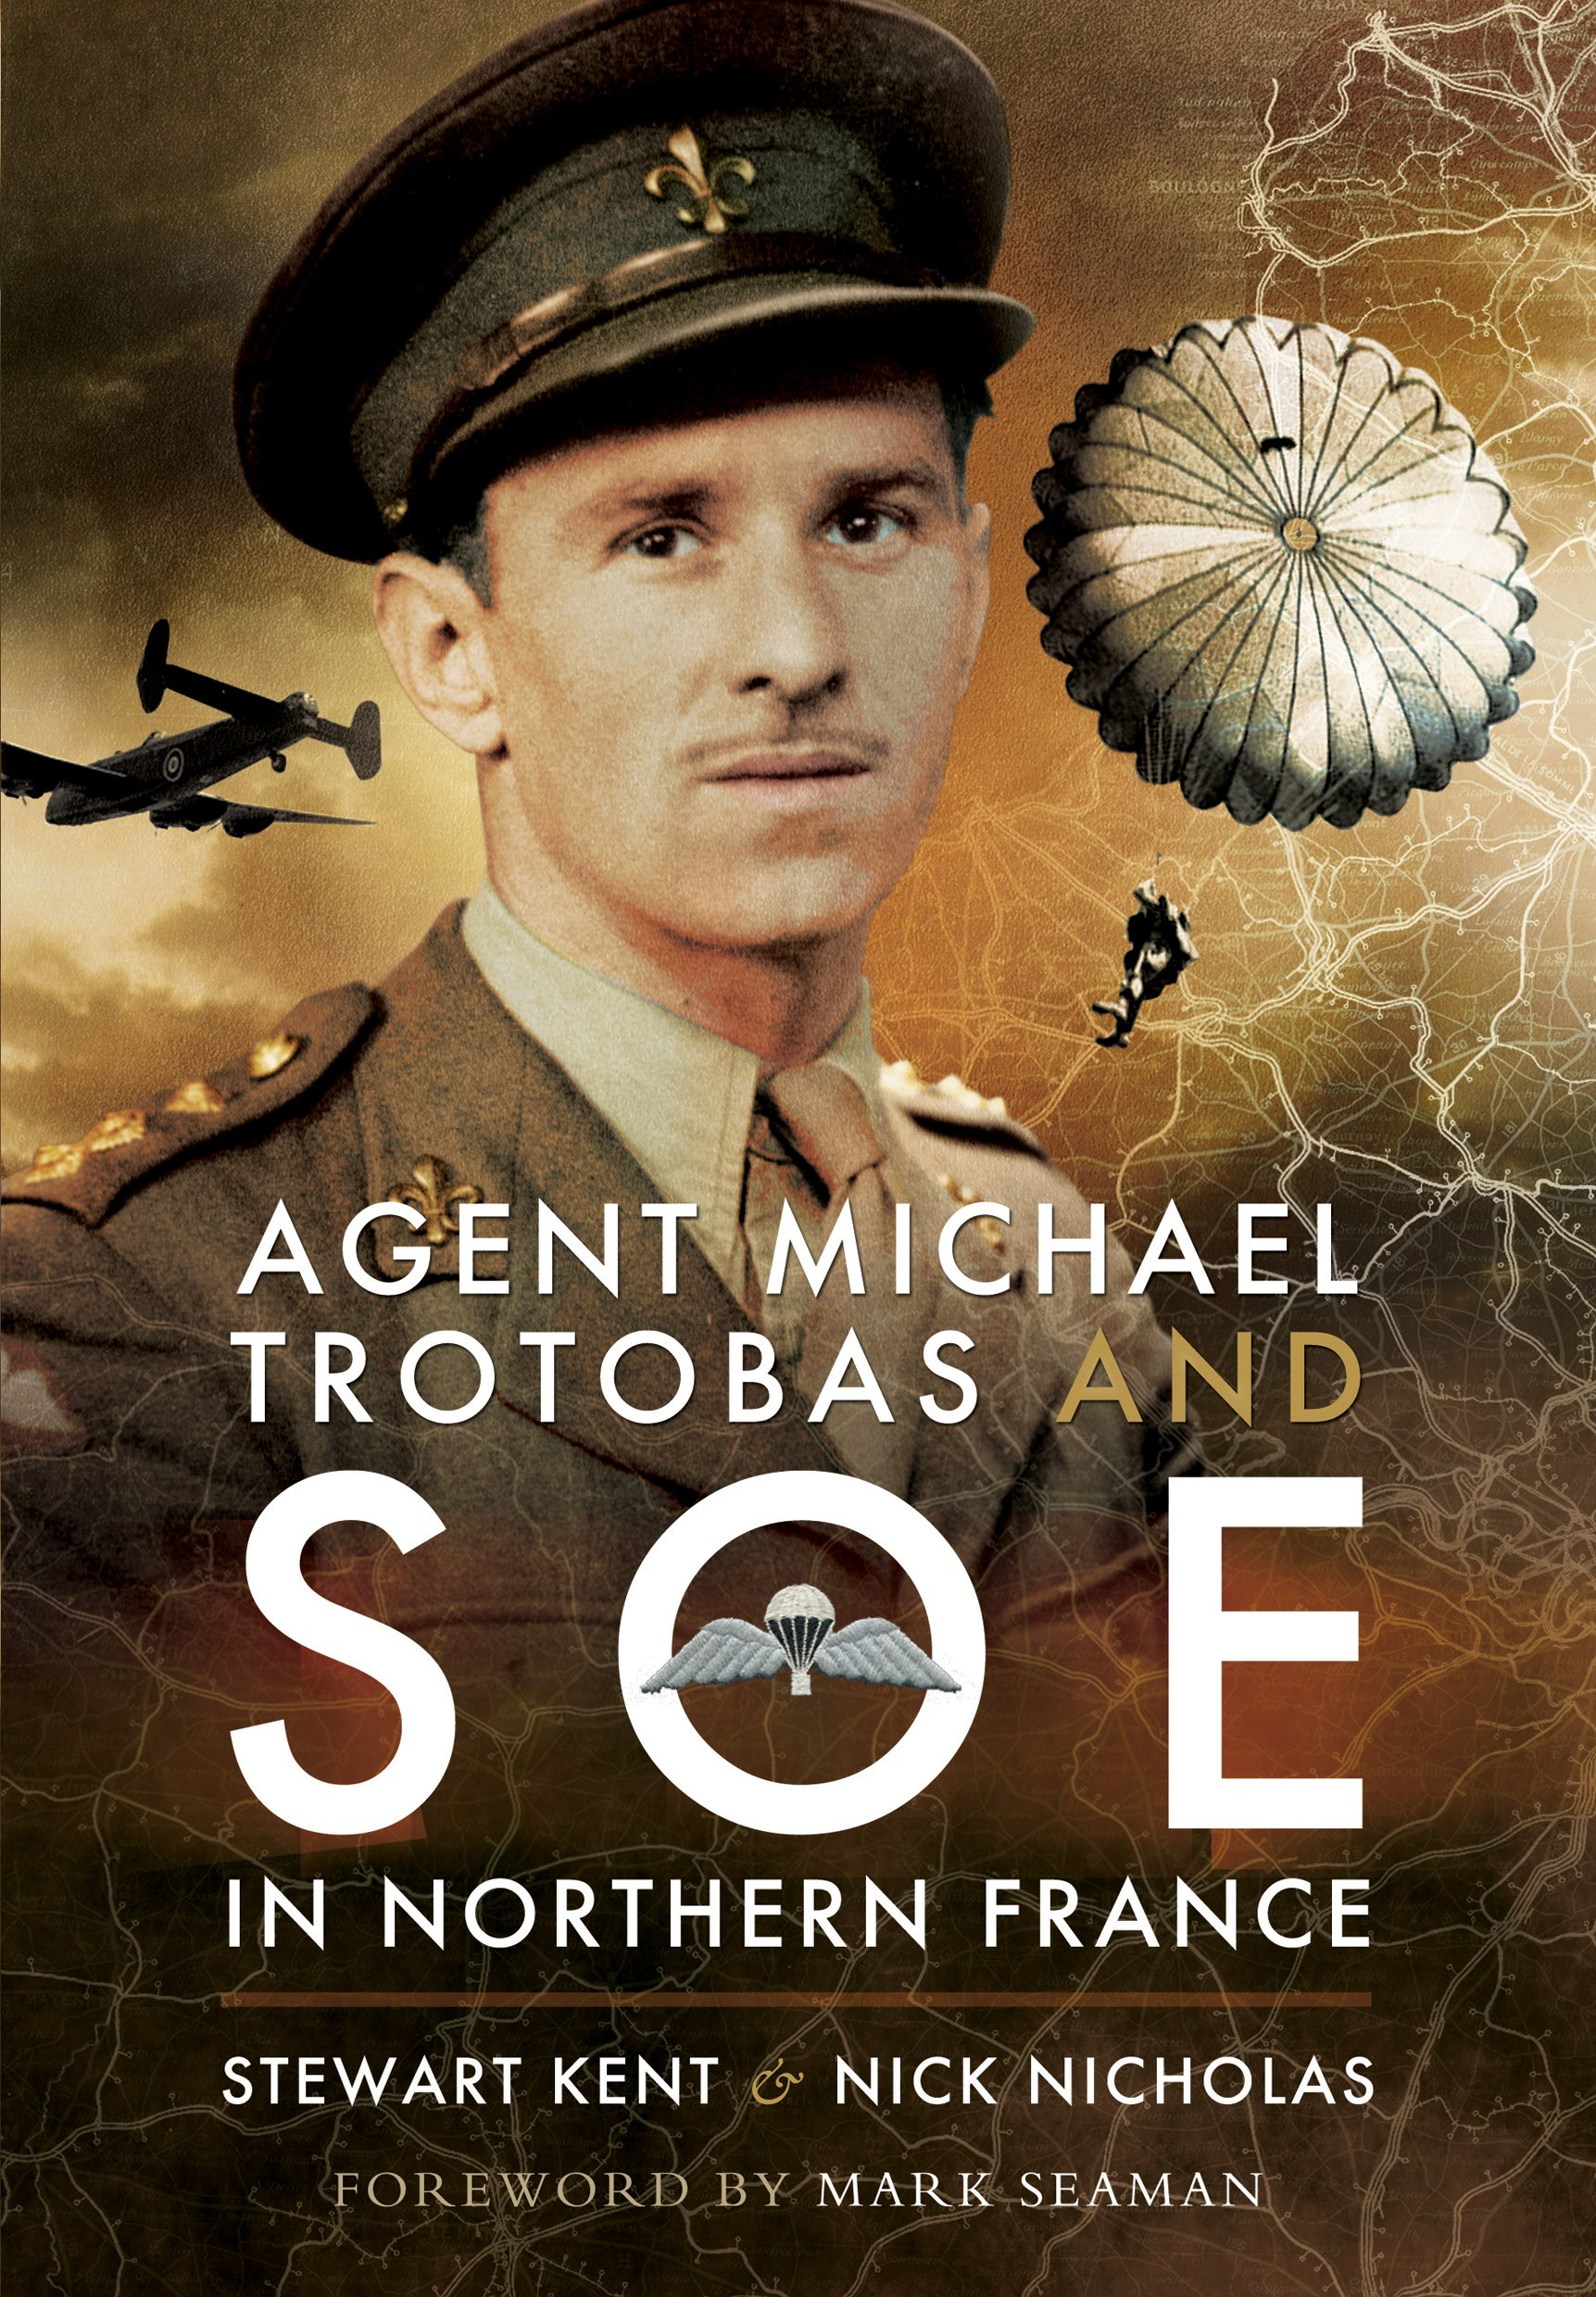 Agent Michael Trotobas and SOE in Northern France PDF